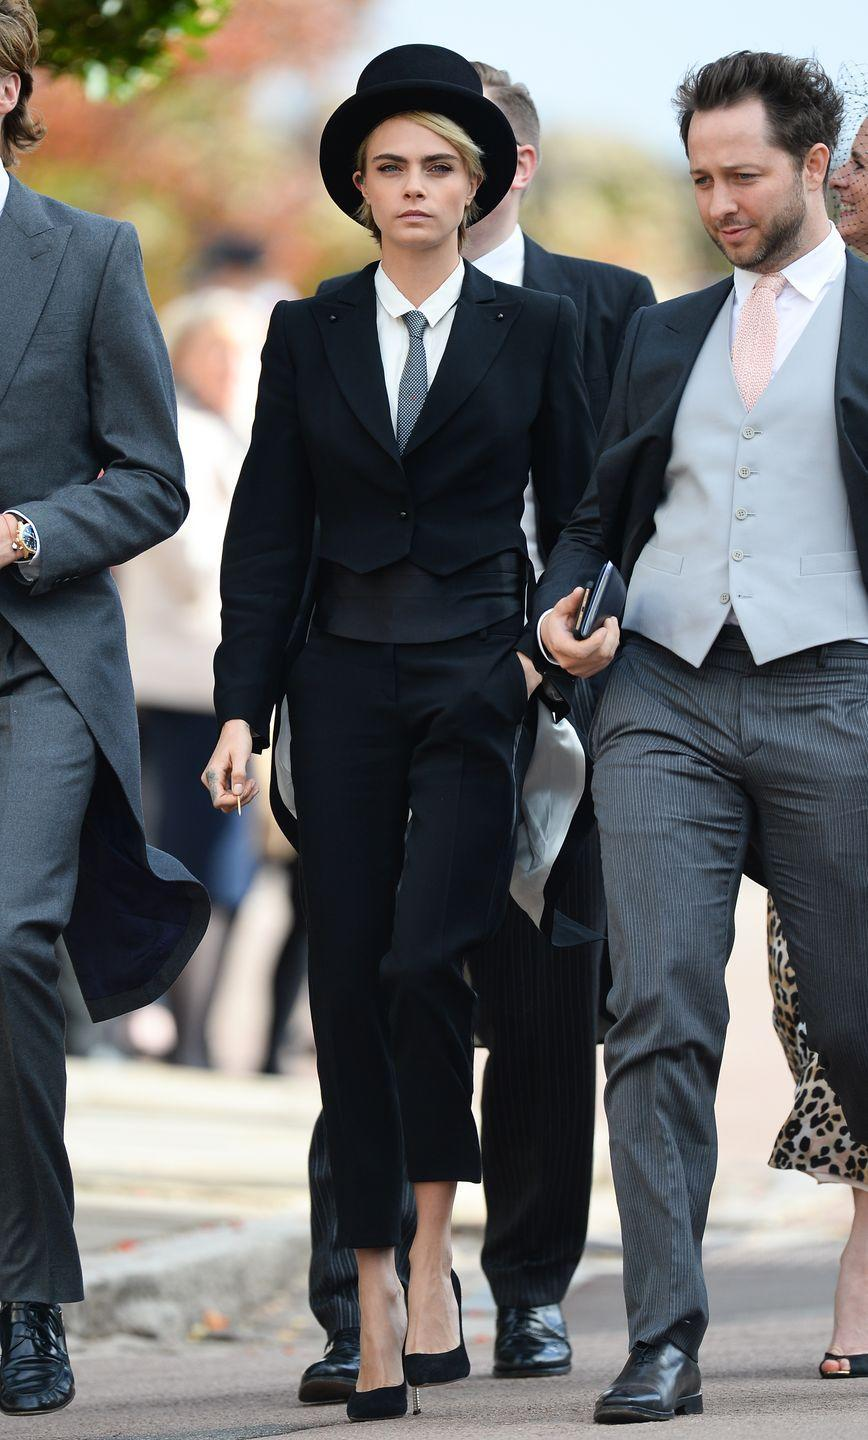 <p>Cara Delevingne took a unique approach by wearing a top hat to accessorize her tailored suit. </p>